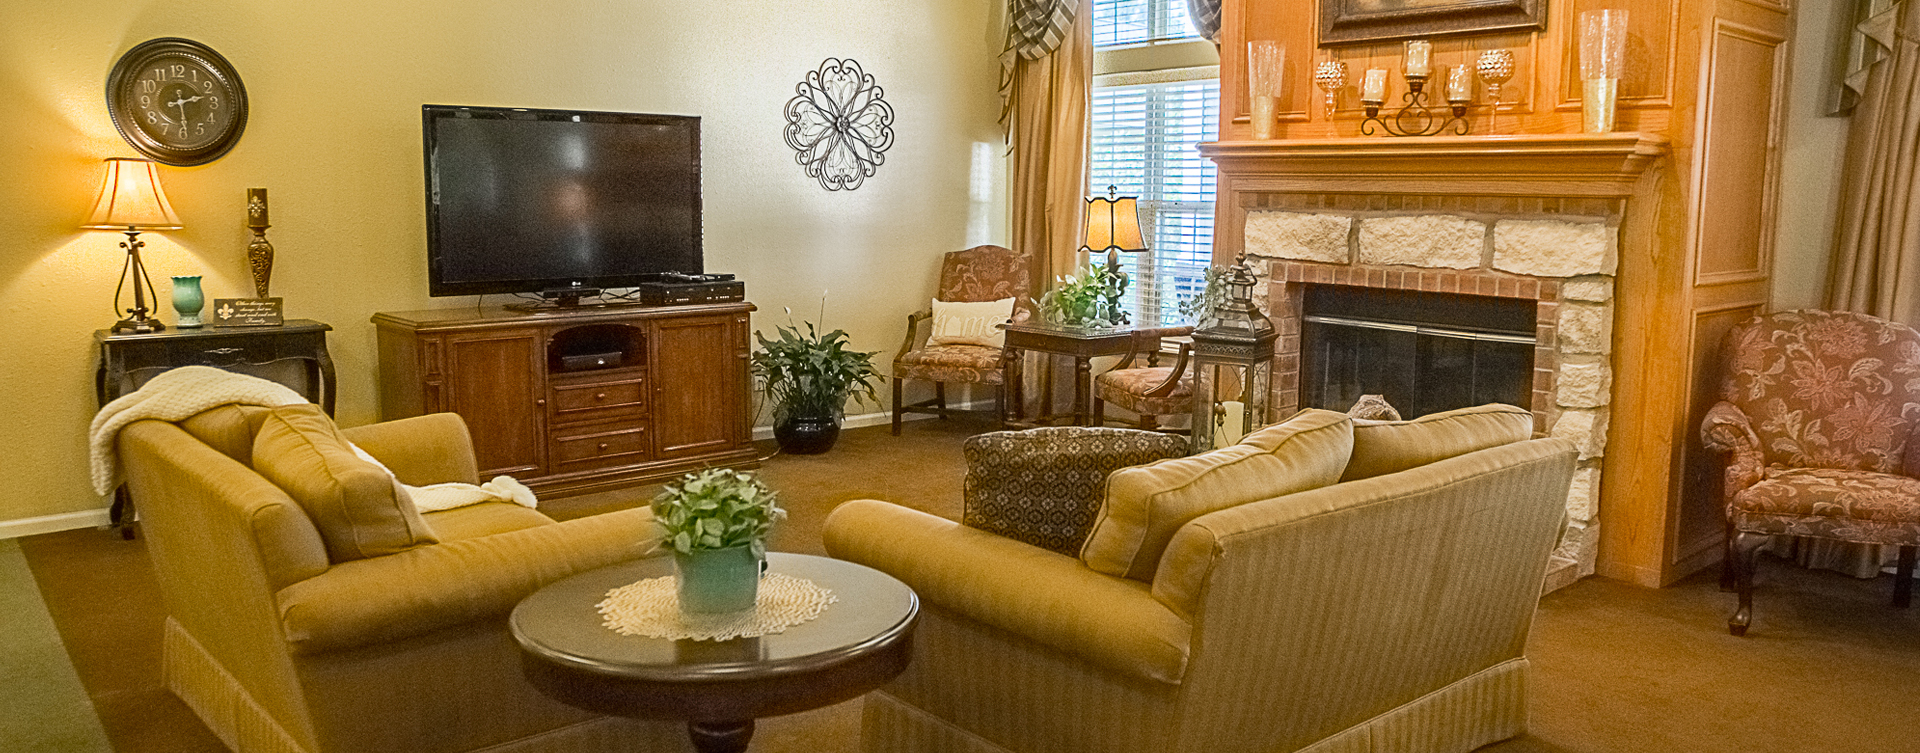 Socialize with friends in the living room at Bickford of Muscatine